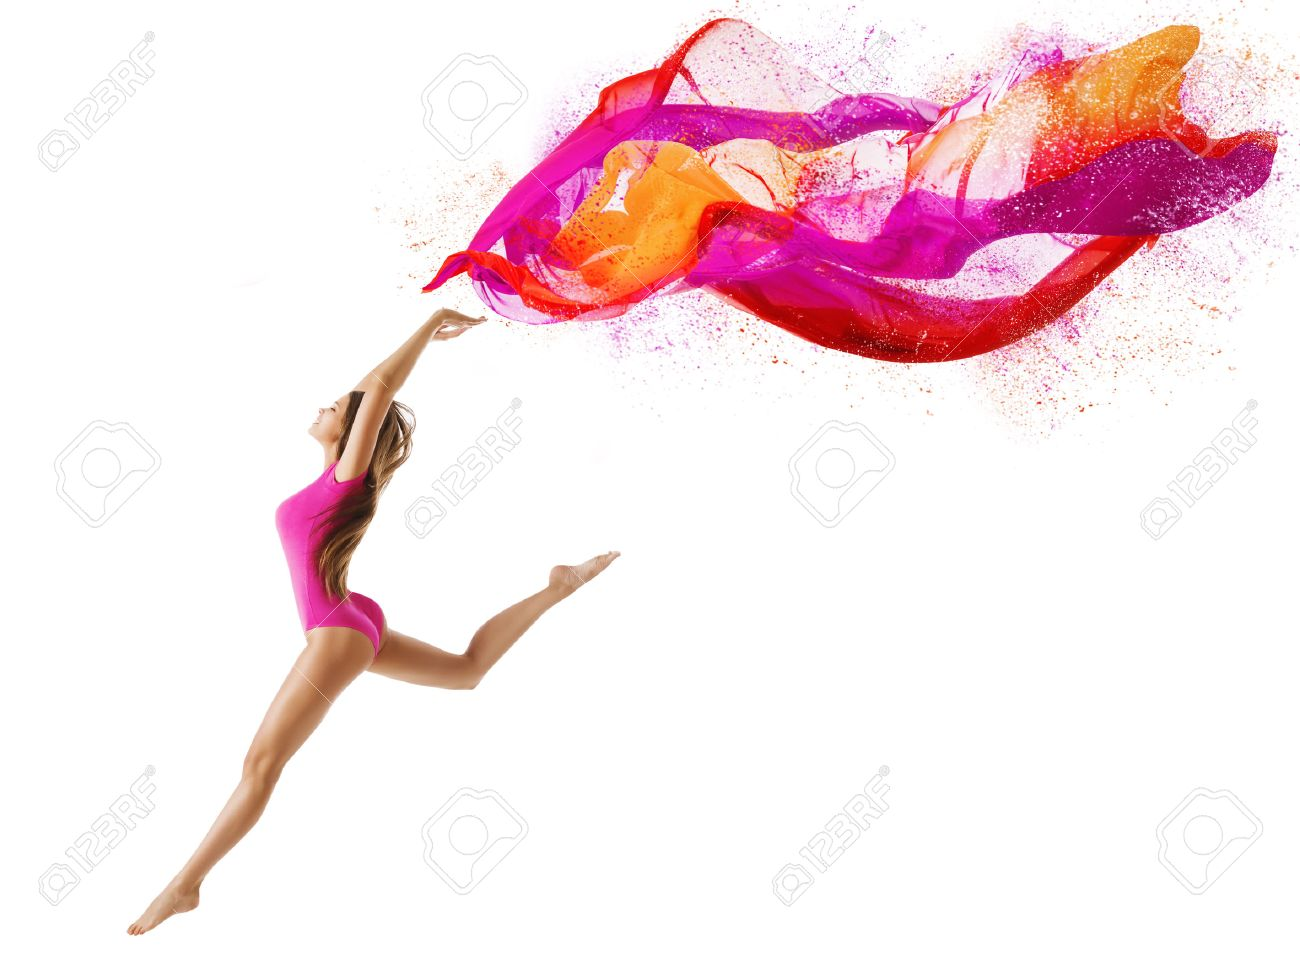 Woman Jump in Sport Leotard, Girl Dancer with Fly Pink Cloth, Slim Gymnast Posing on White background - 43006499